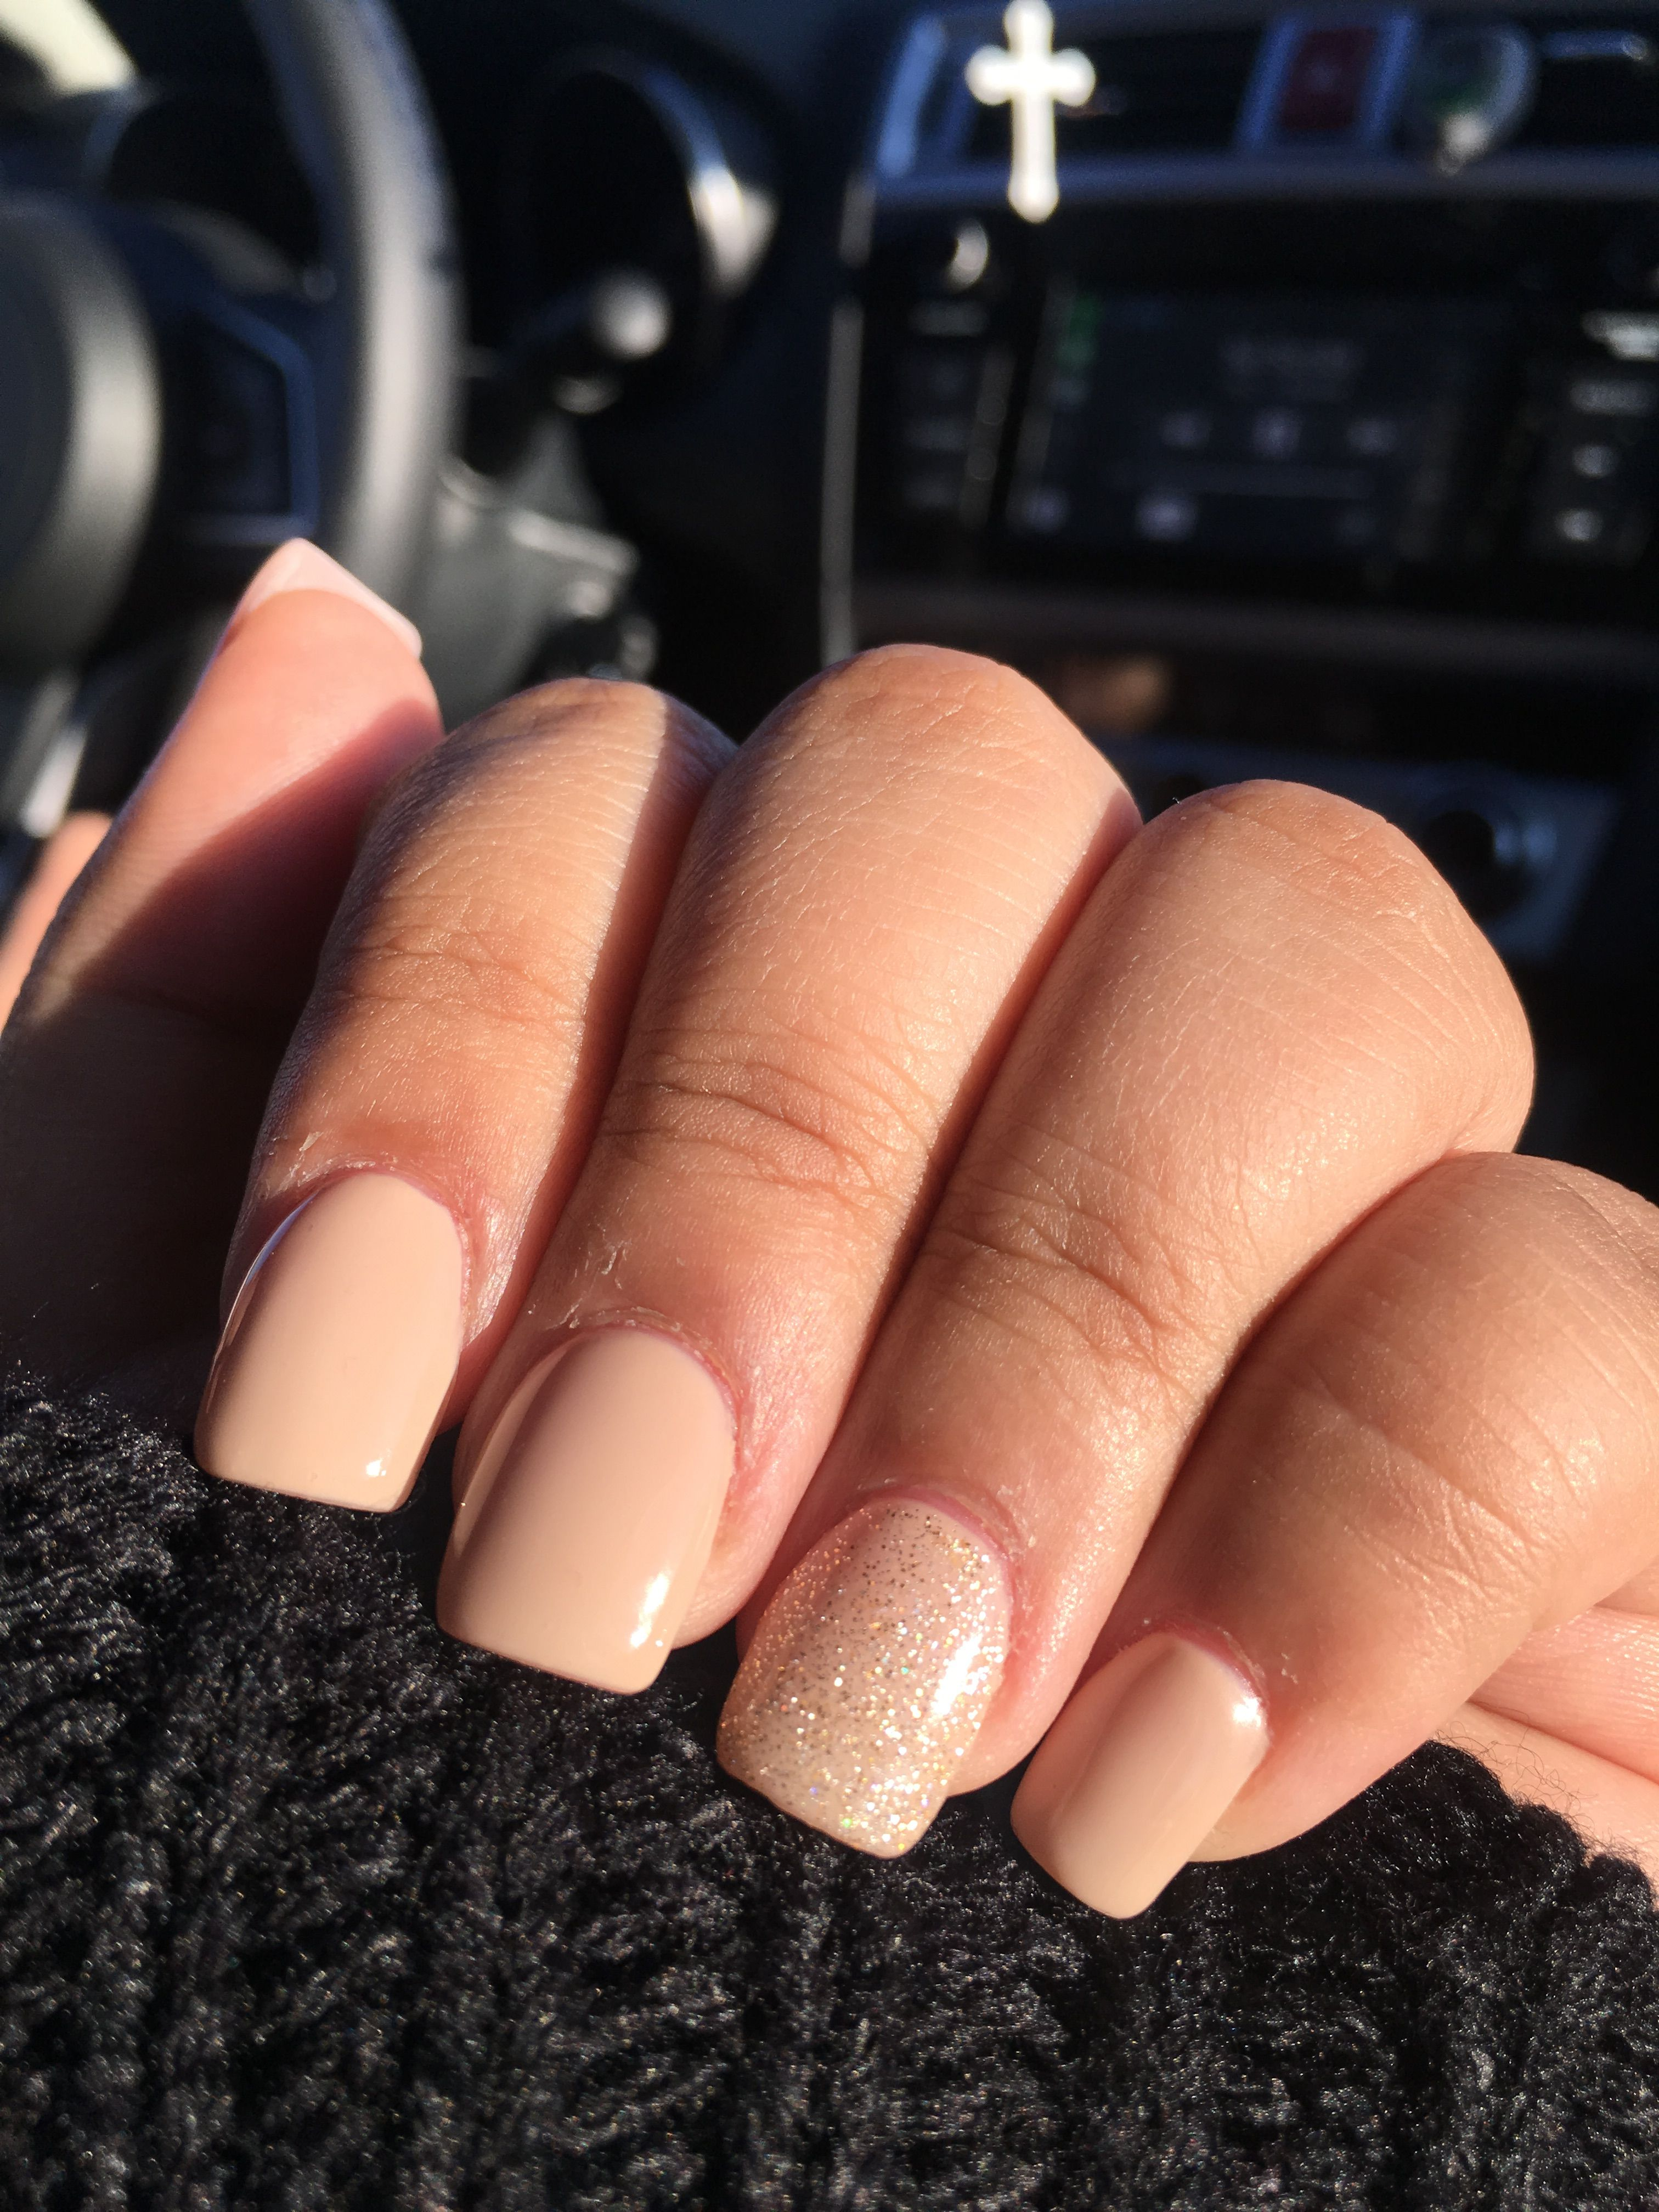 Nude acrylic nails with glitter 2017 Squoval nails | Nails ...